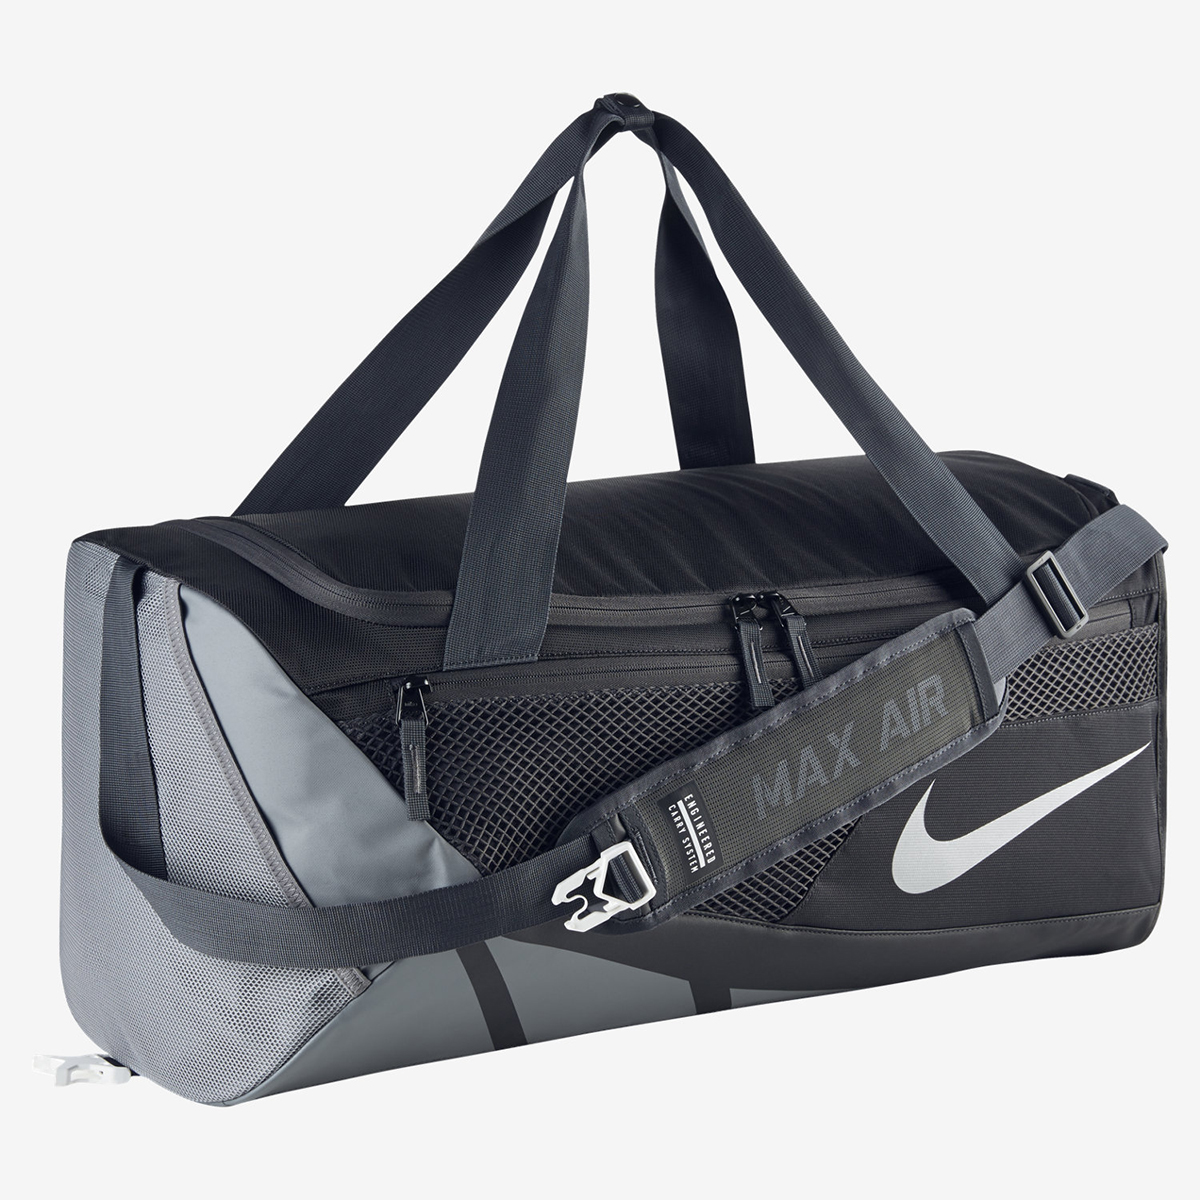 057f0cfce Nike Vapor Max Air 2.0 Duffel Bag - SPORTING GOODS Backpacks | Duffel Bags  - Superfanas.lt